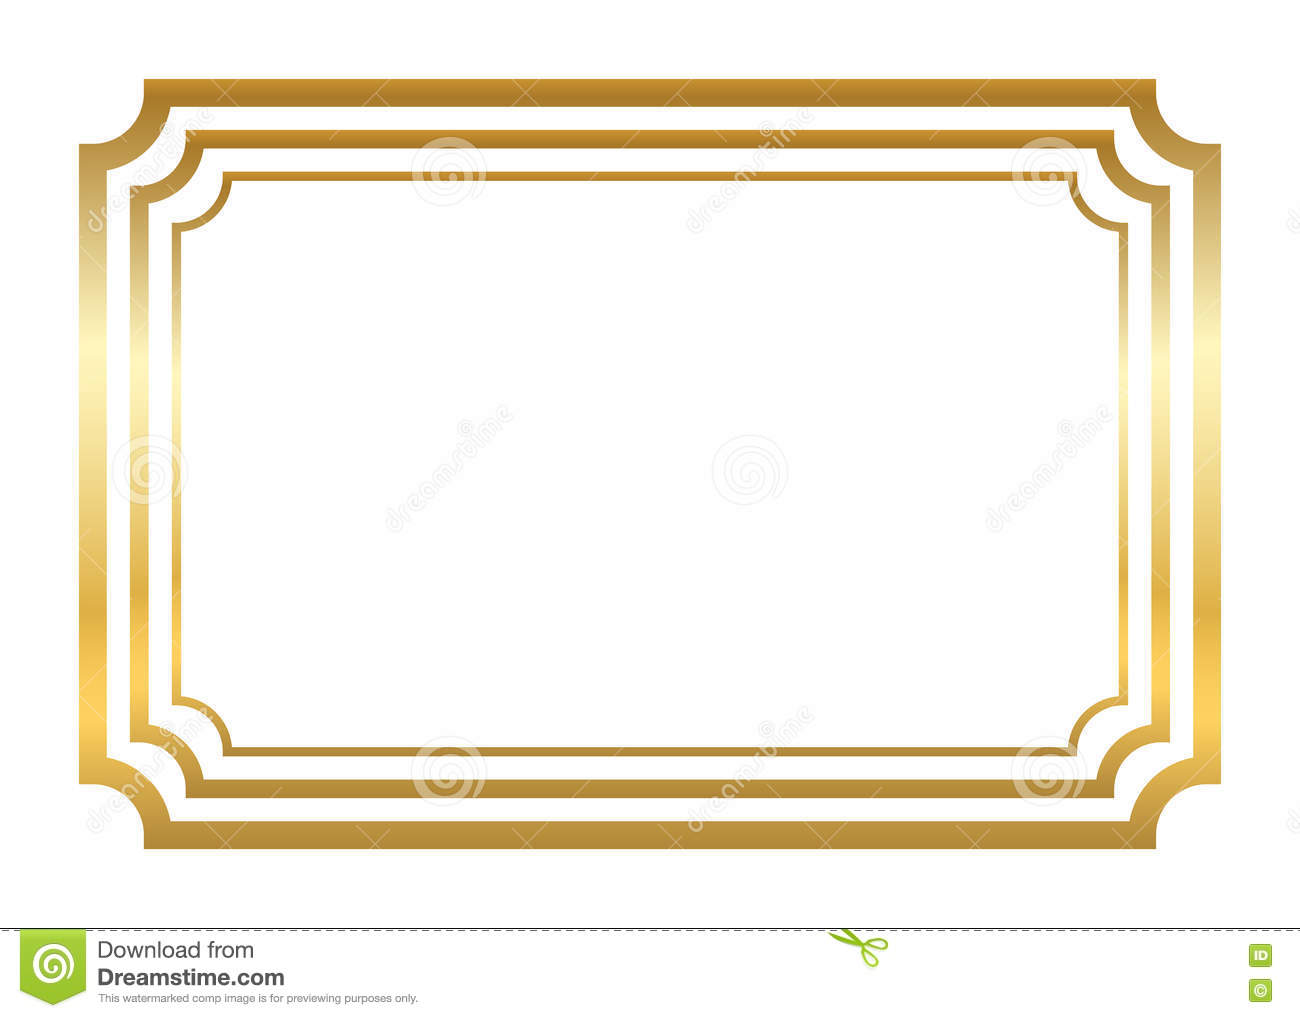 12436b41435 Gold frame. Beautiful simple golden design. Vintage style decorative  border